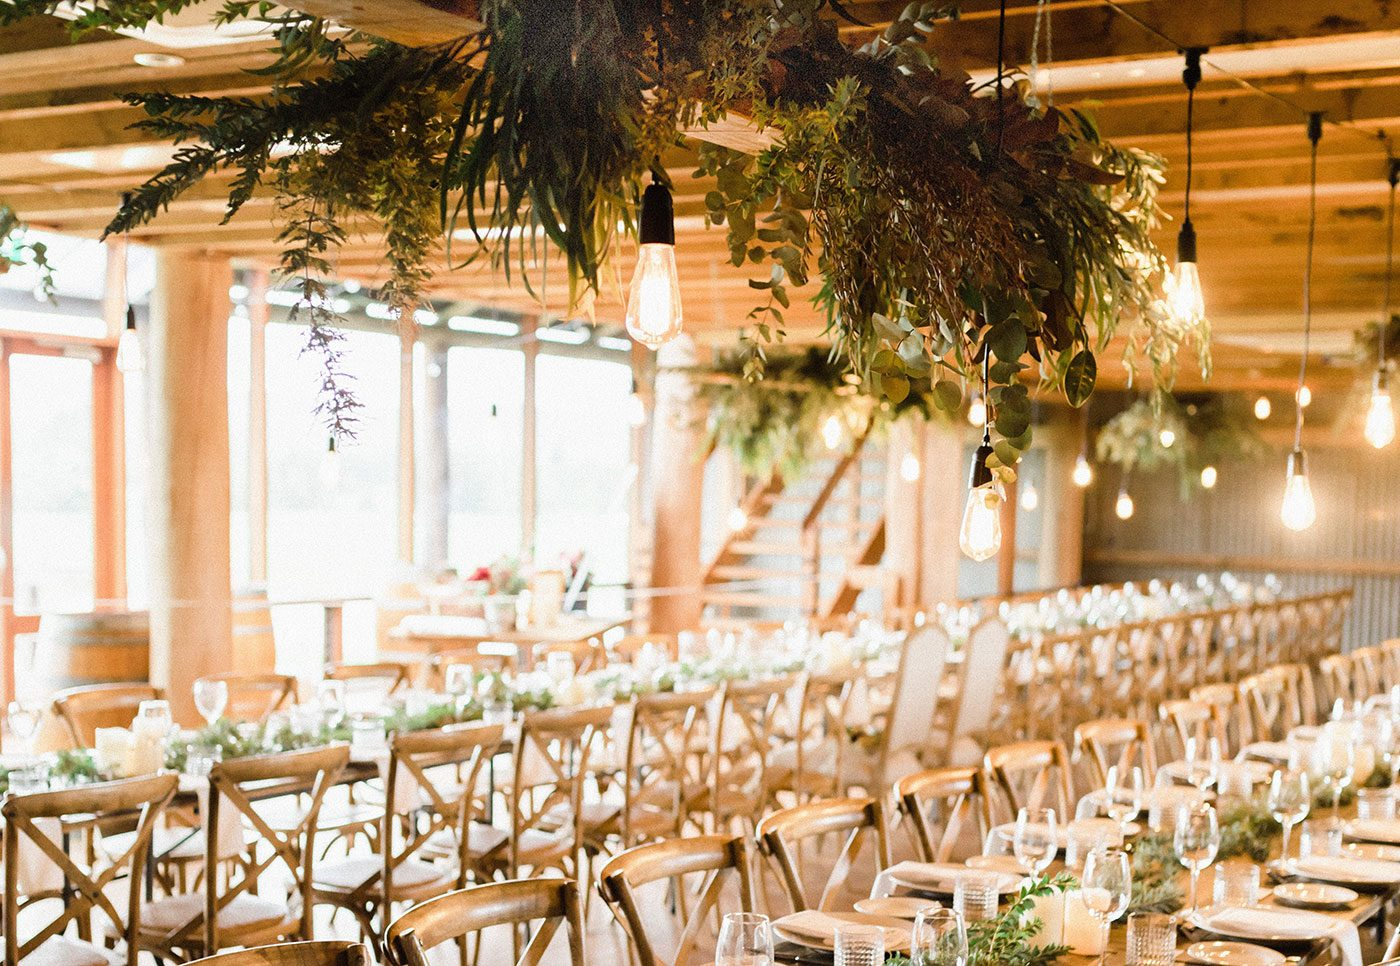 How to Decorate the Ceiling of your Wedding Venue